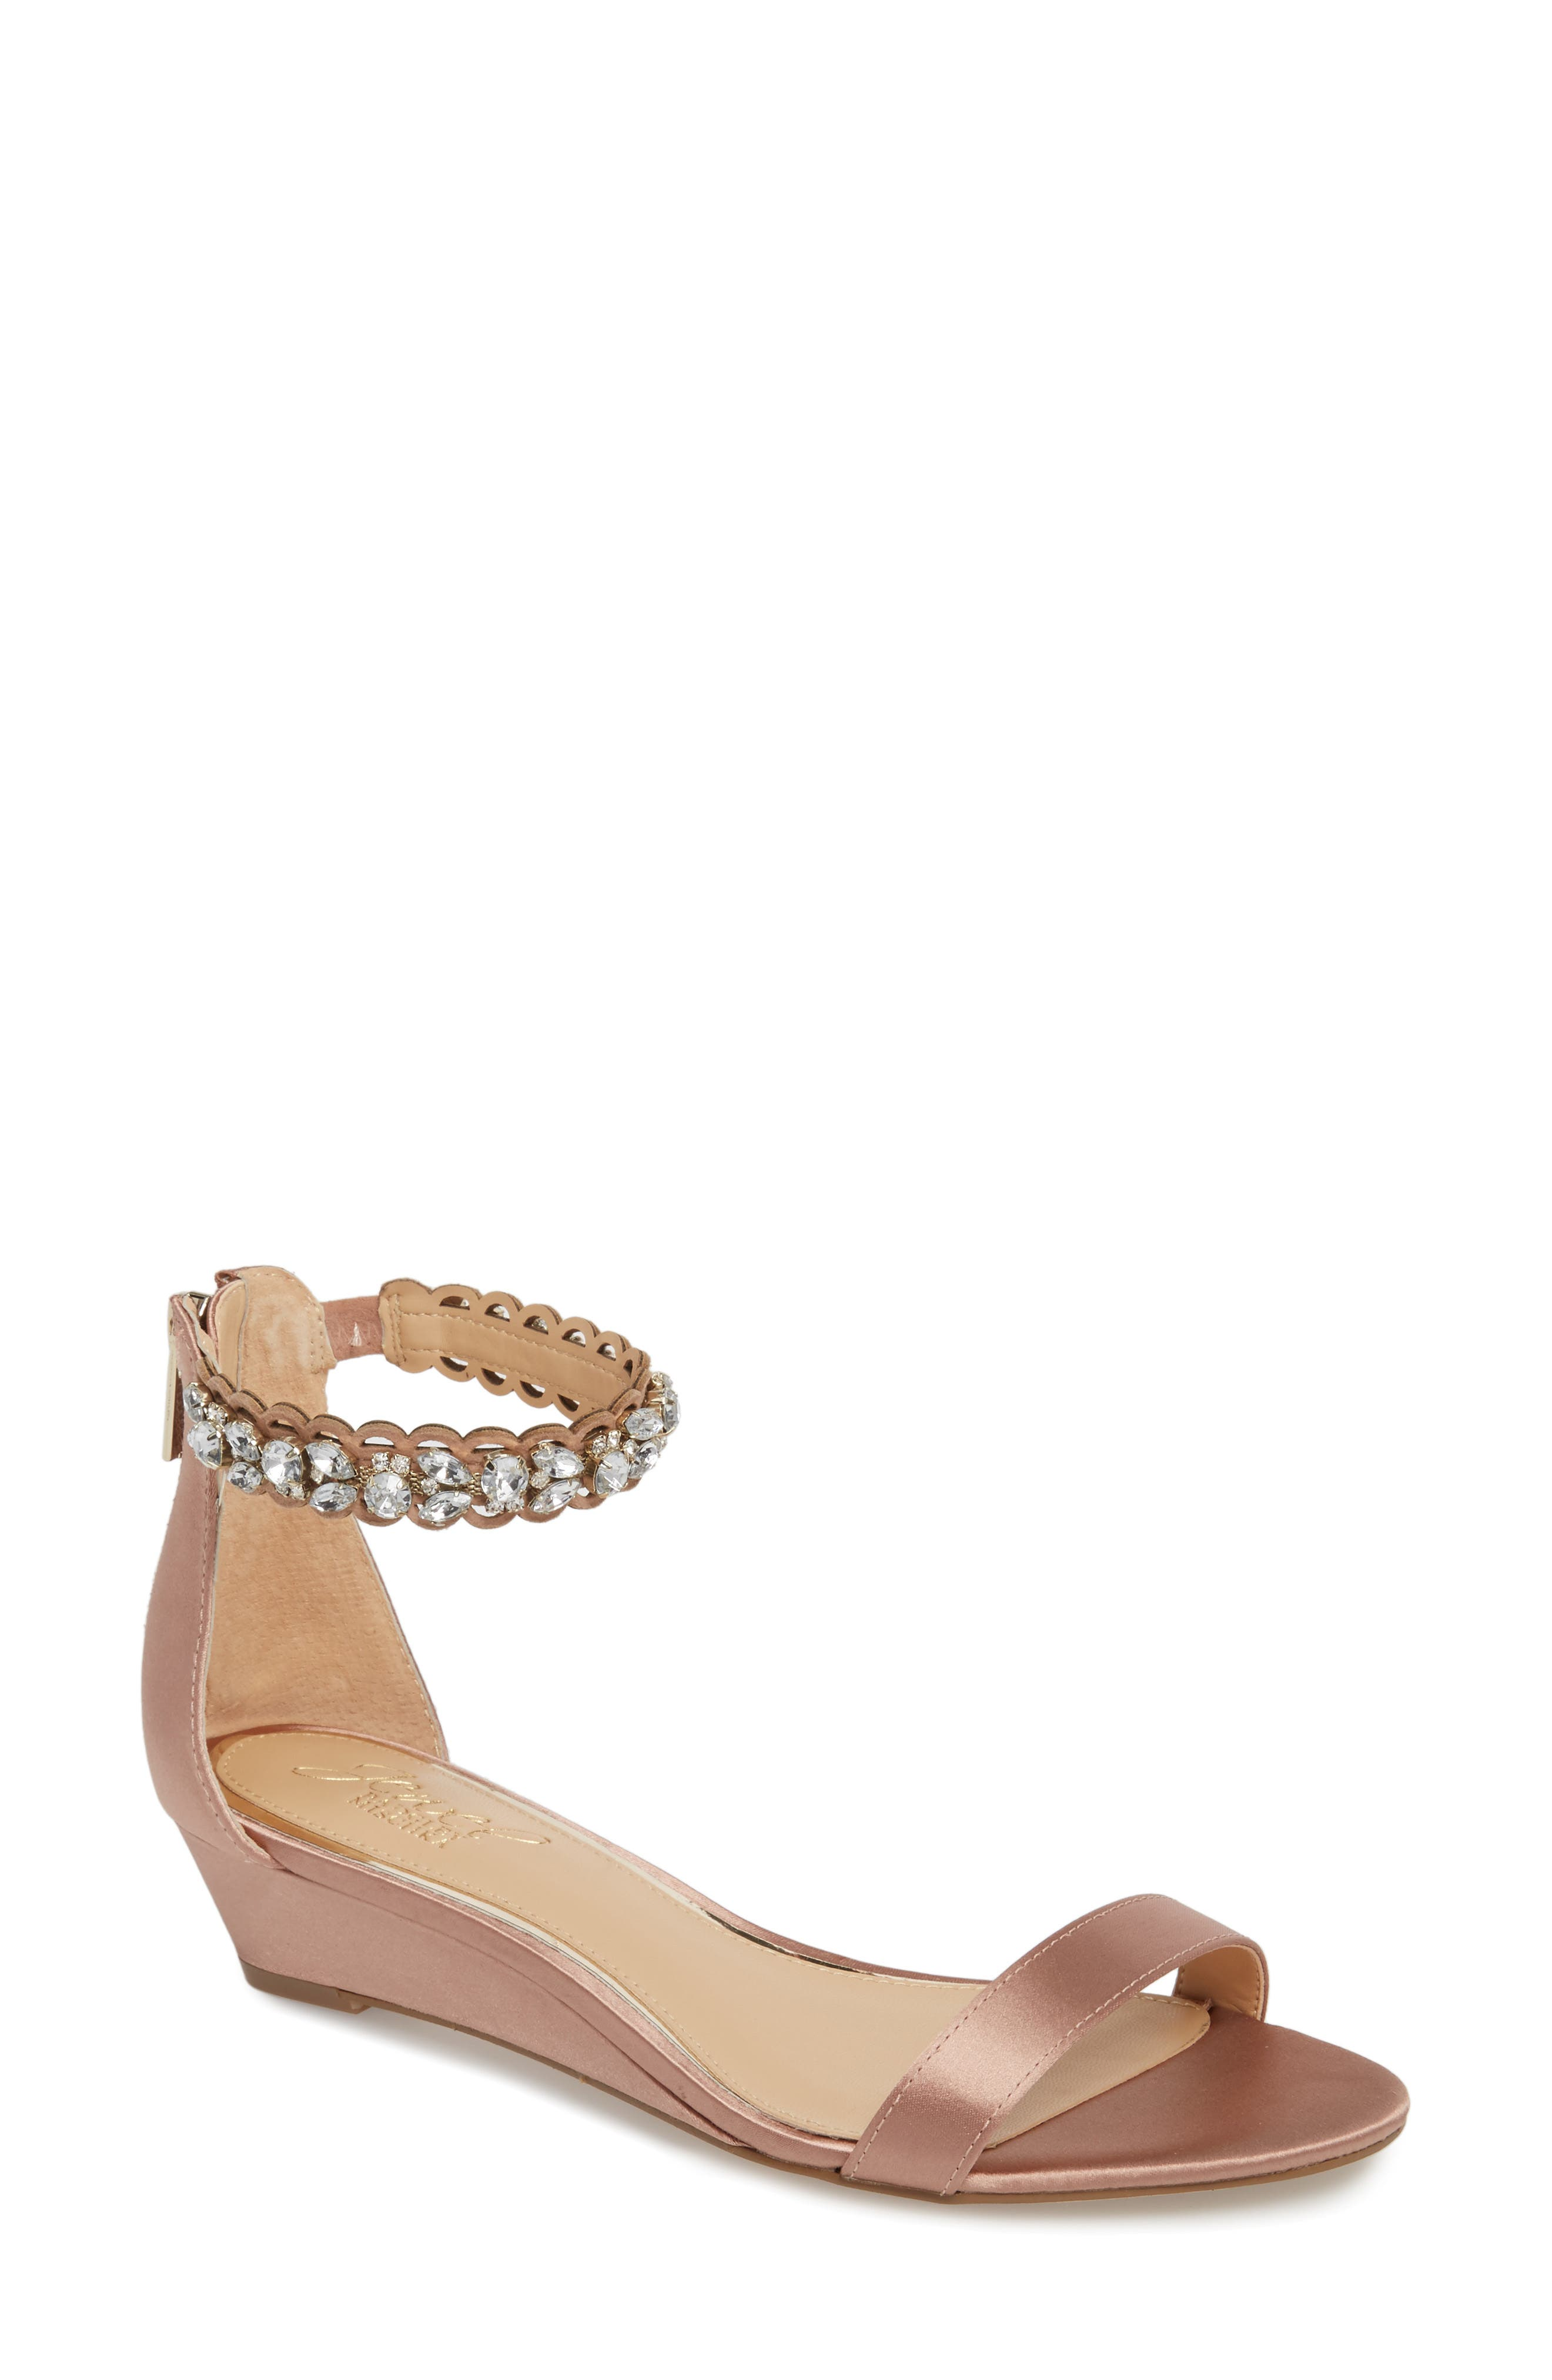 Ginger Wedge Sandal,                         Main,                         color, Dark Blush